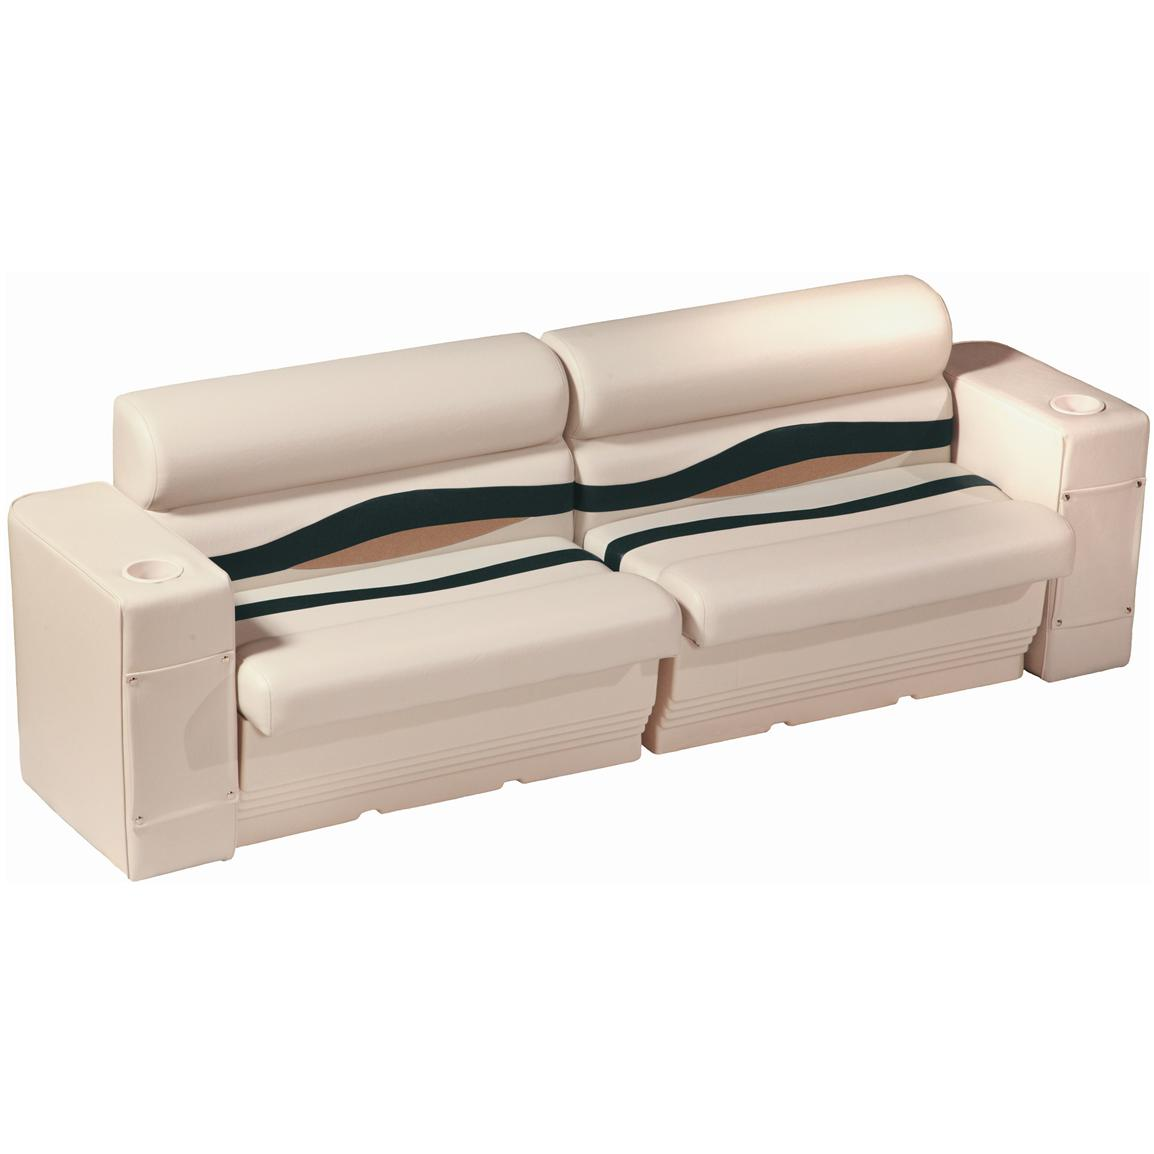 Wise® Premier Pontoon Rear or Side Bench Seating, Color B - Platinum Punch / Jade / Fawn